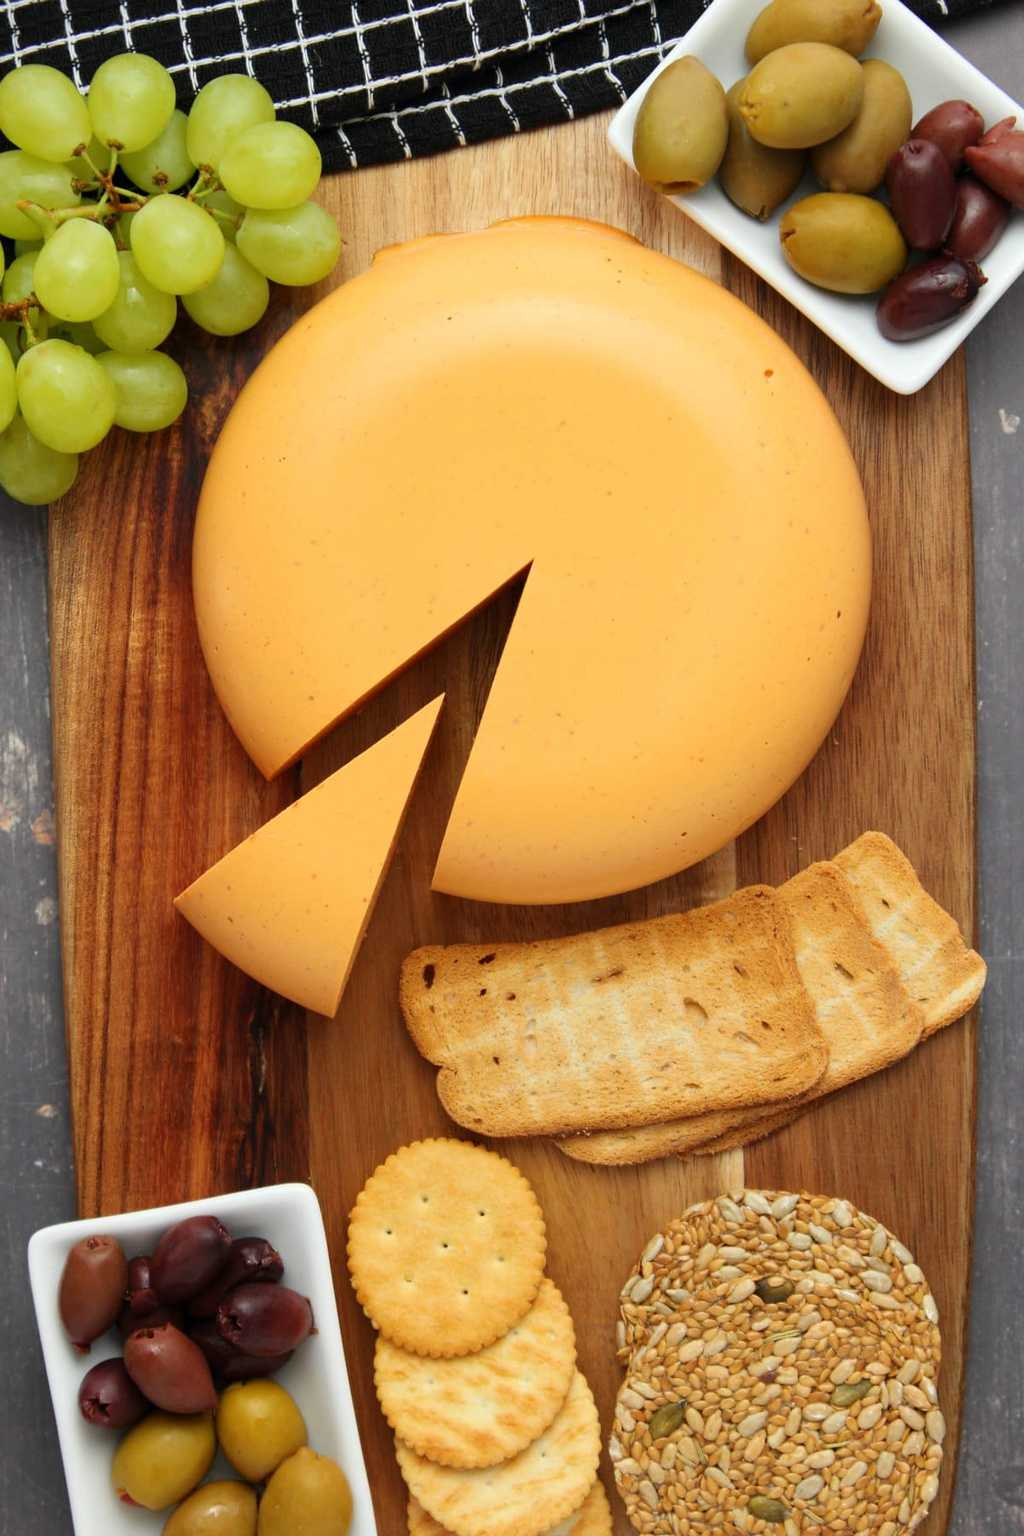 Vegan cheddar cheese on a wooden board with grapes, olives and crackers.